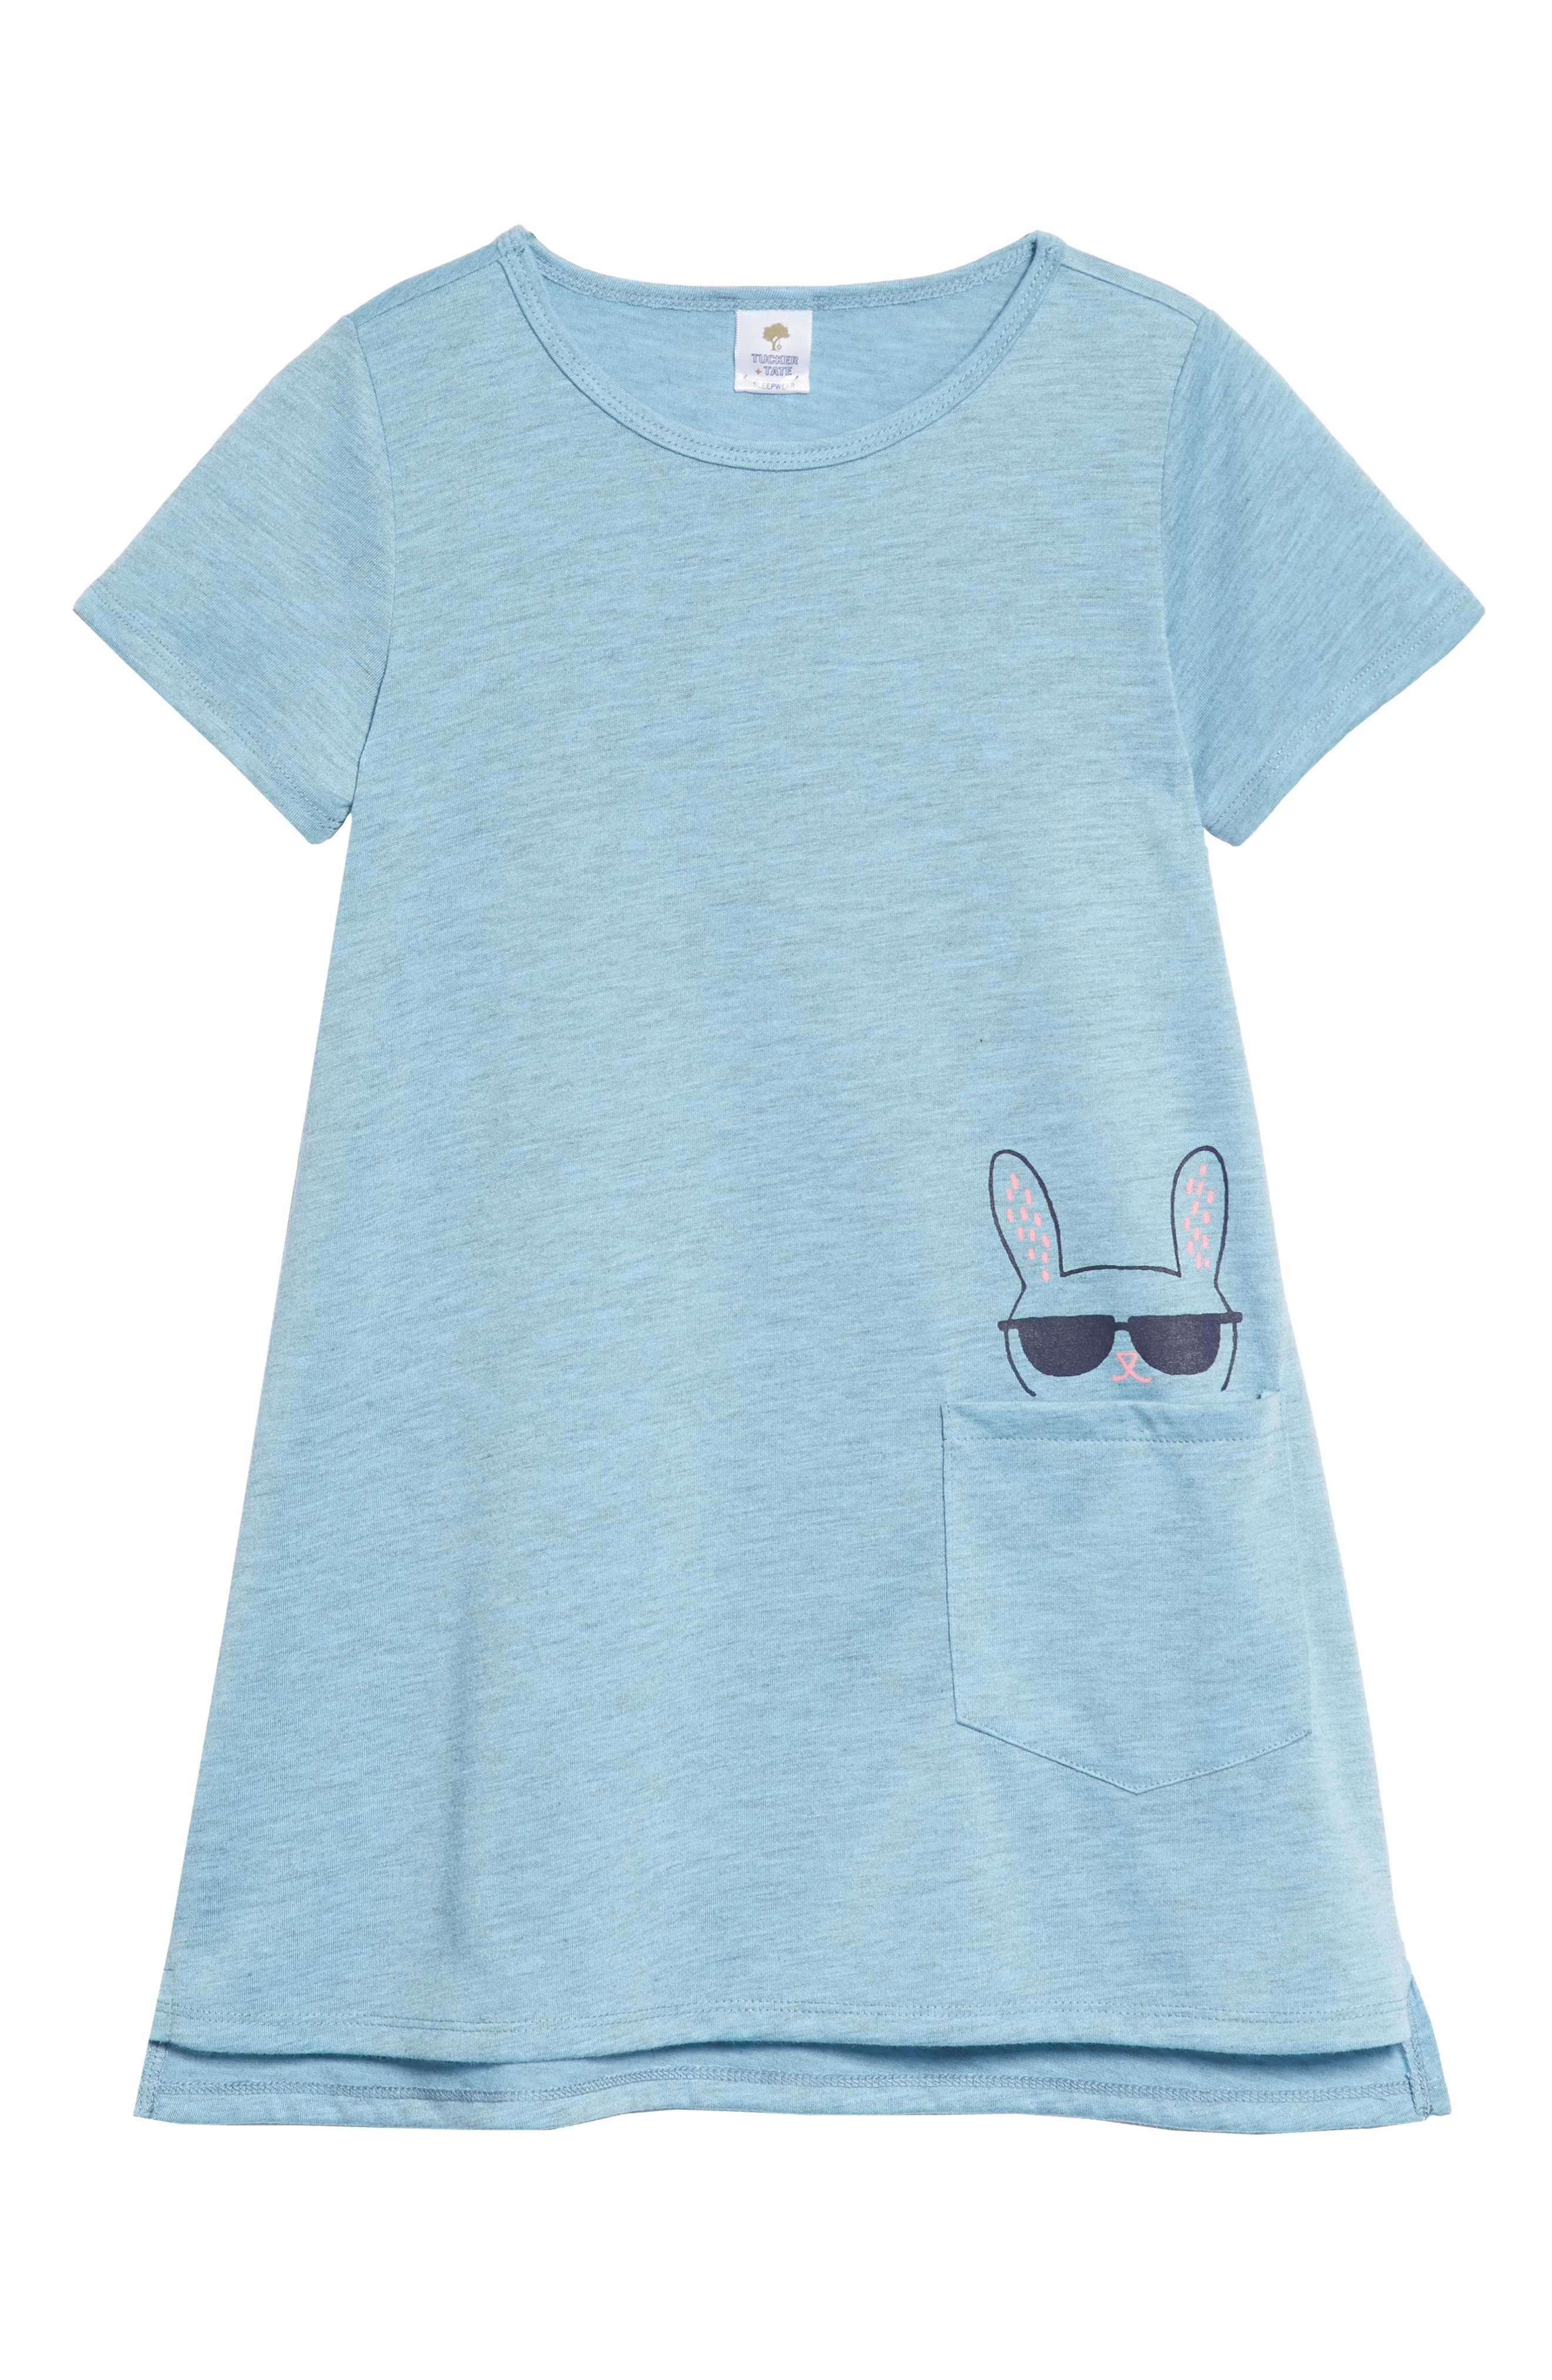 Tucker+Tate Pocket Dress,                             Main thumbnail 1, color,                             Blue Sky Heather Cool Bunny